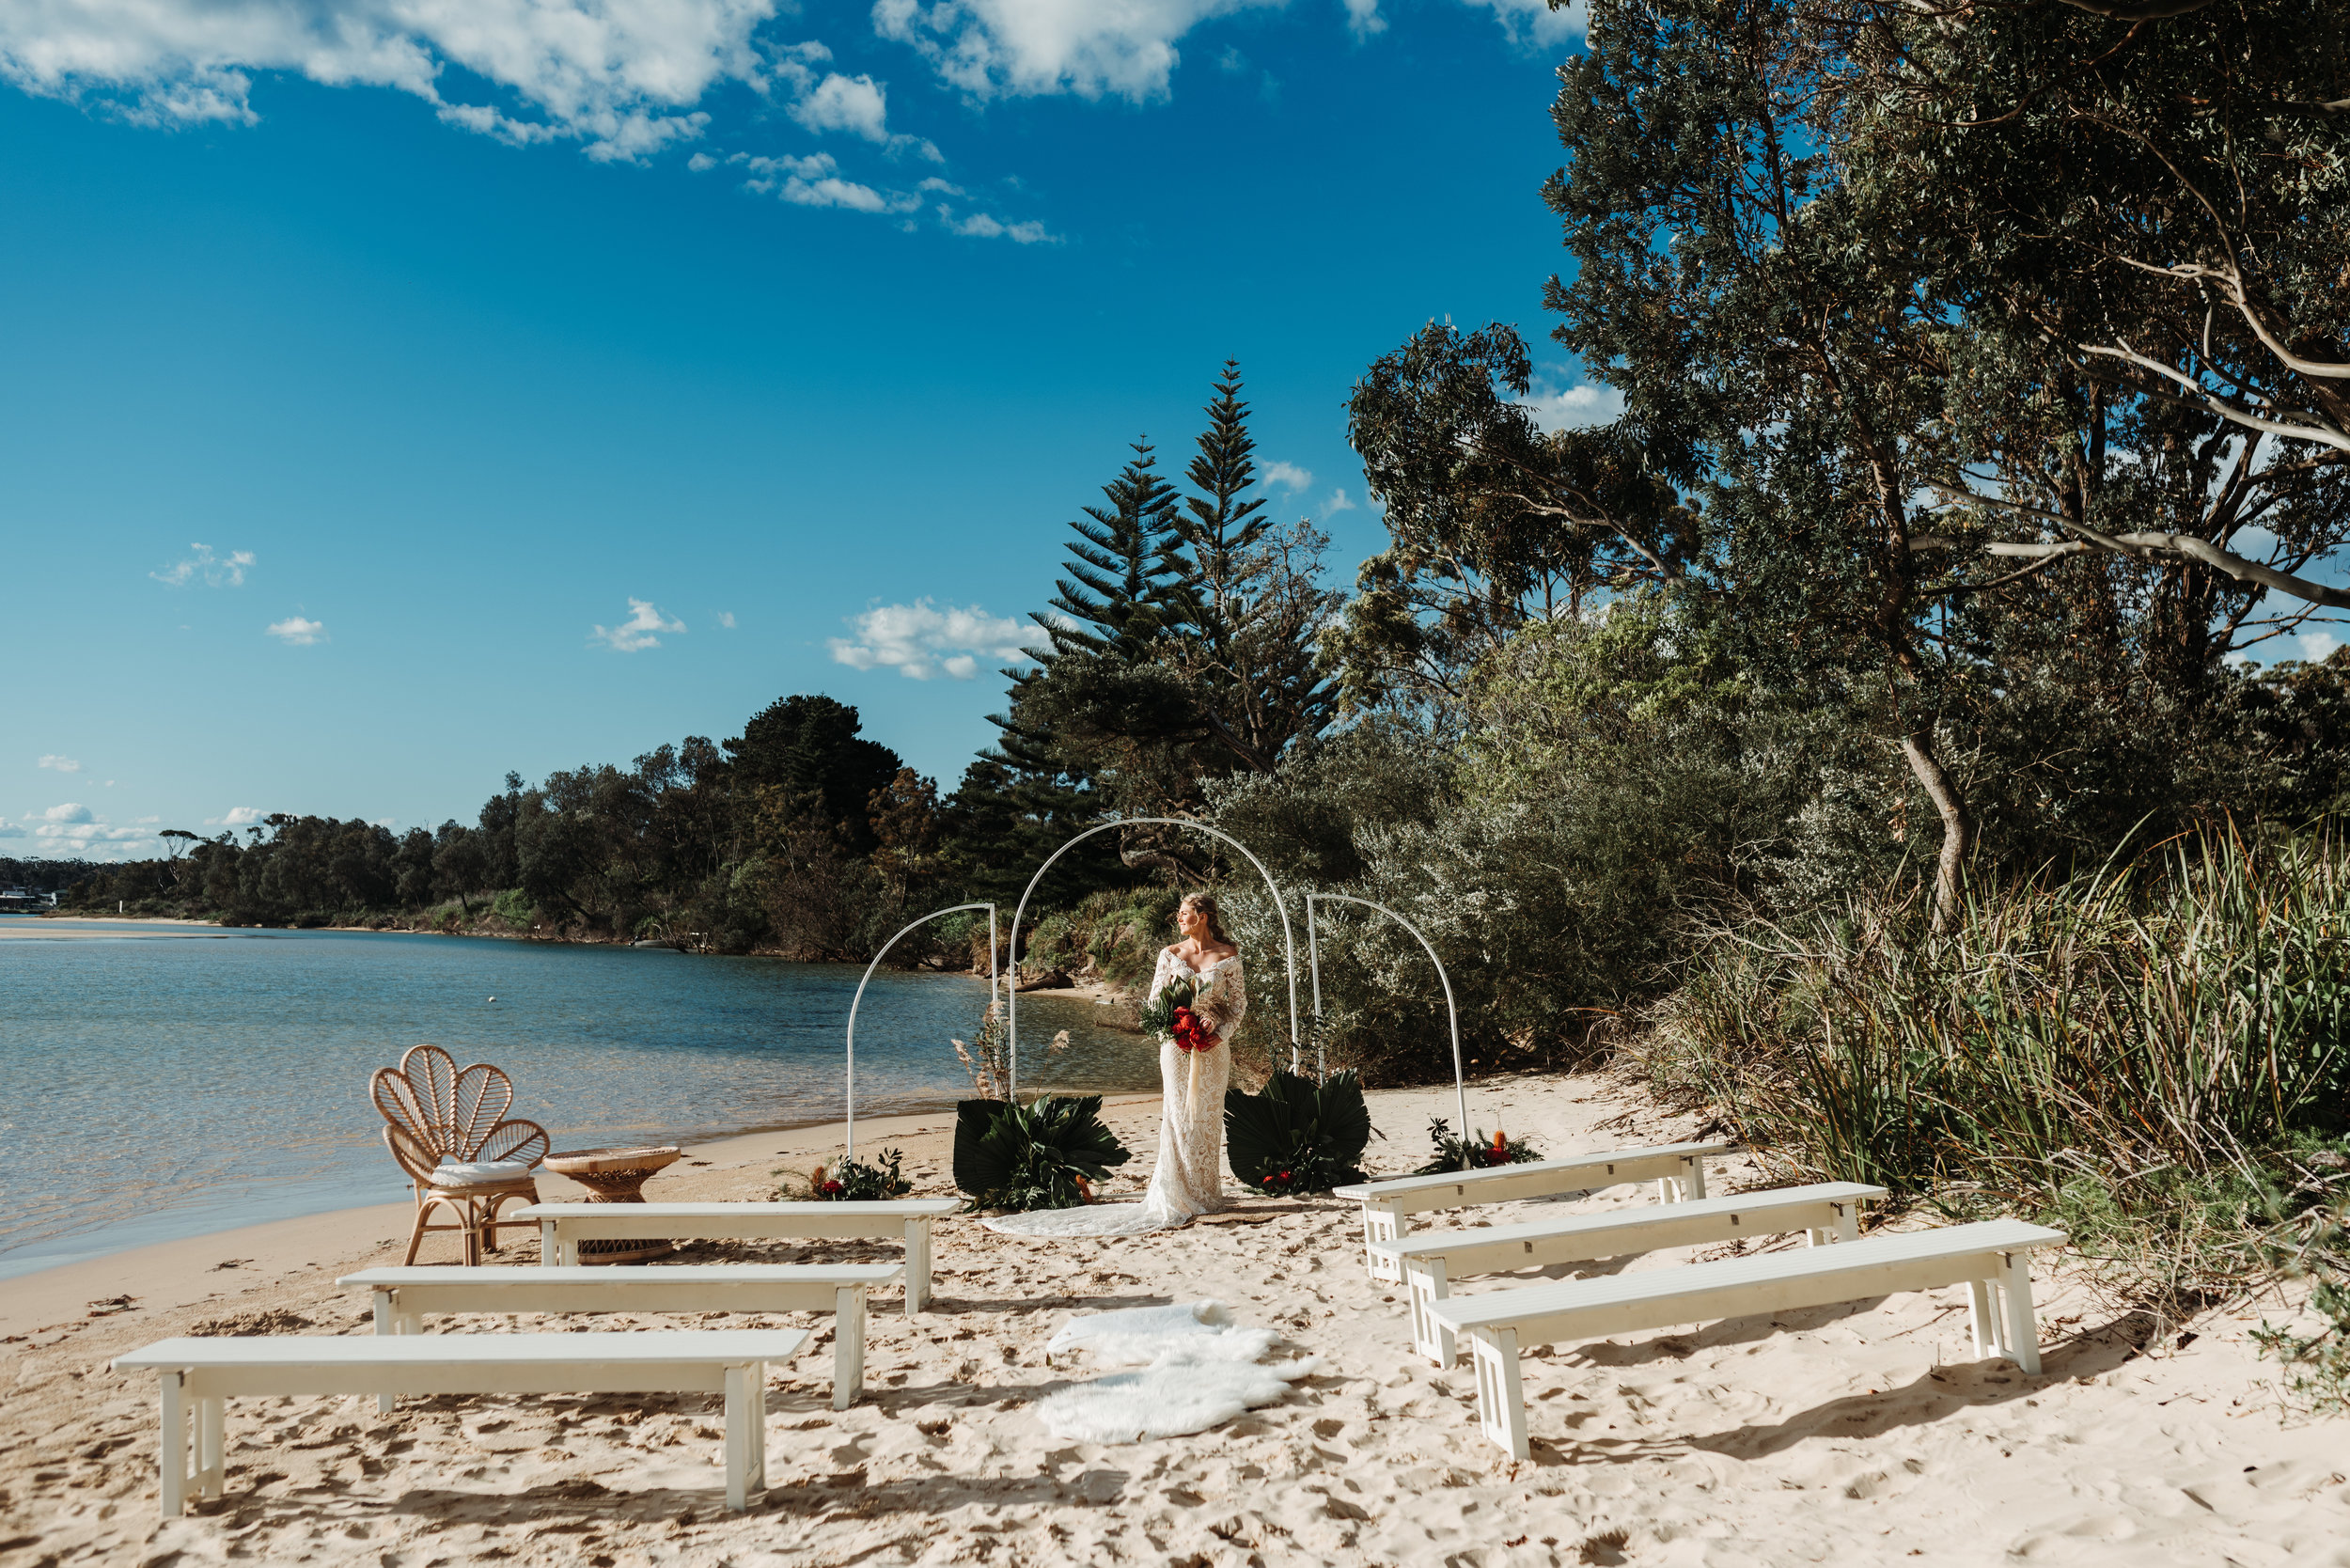 The Cove, Jervis Bay Bridal Session    23rd September 2019